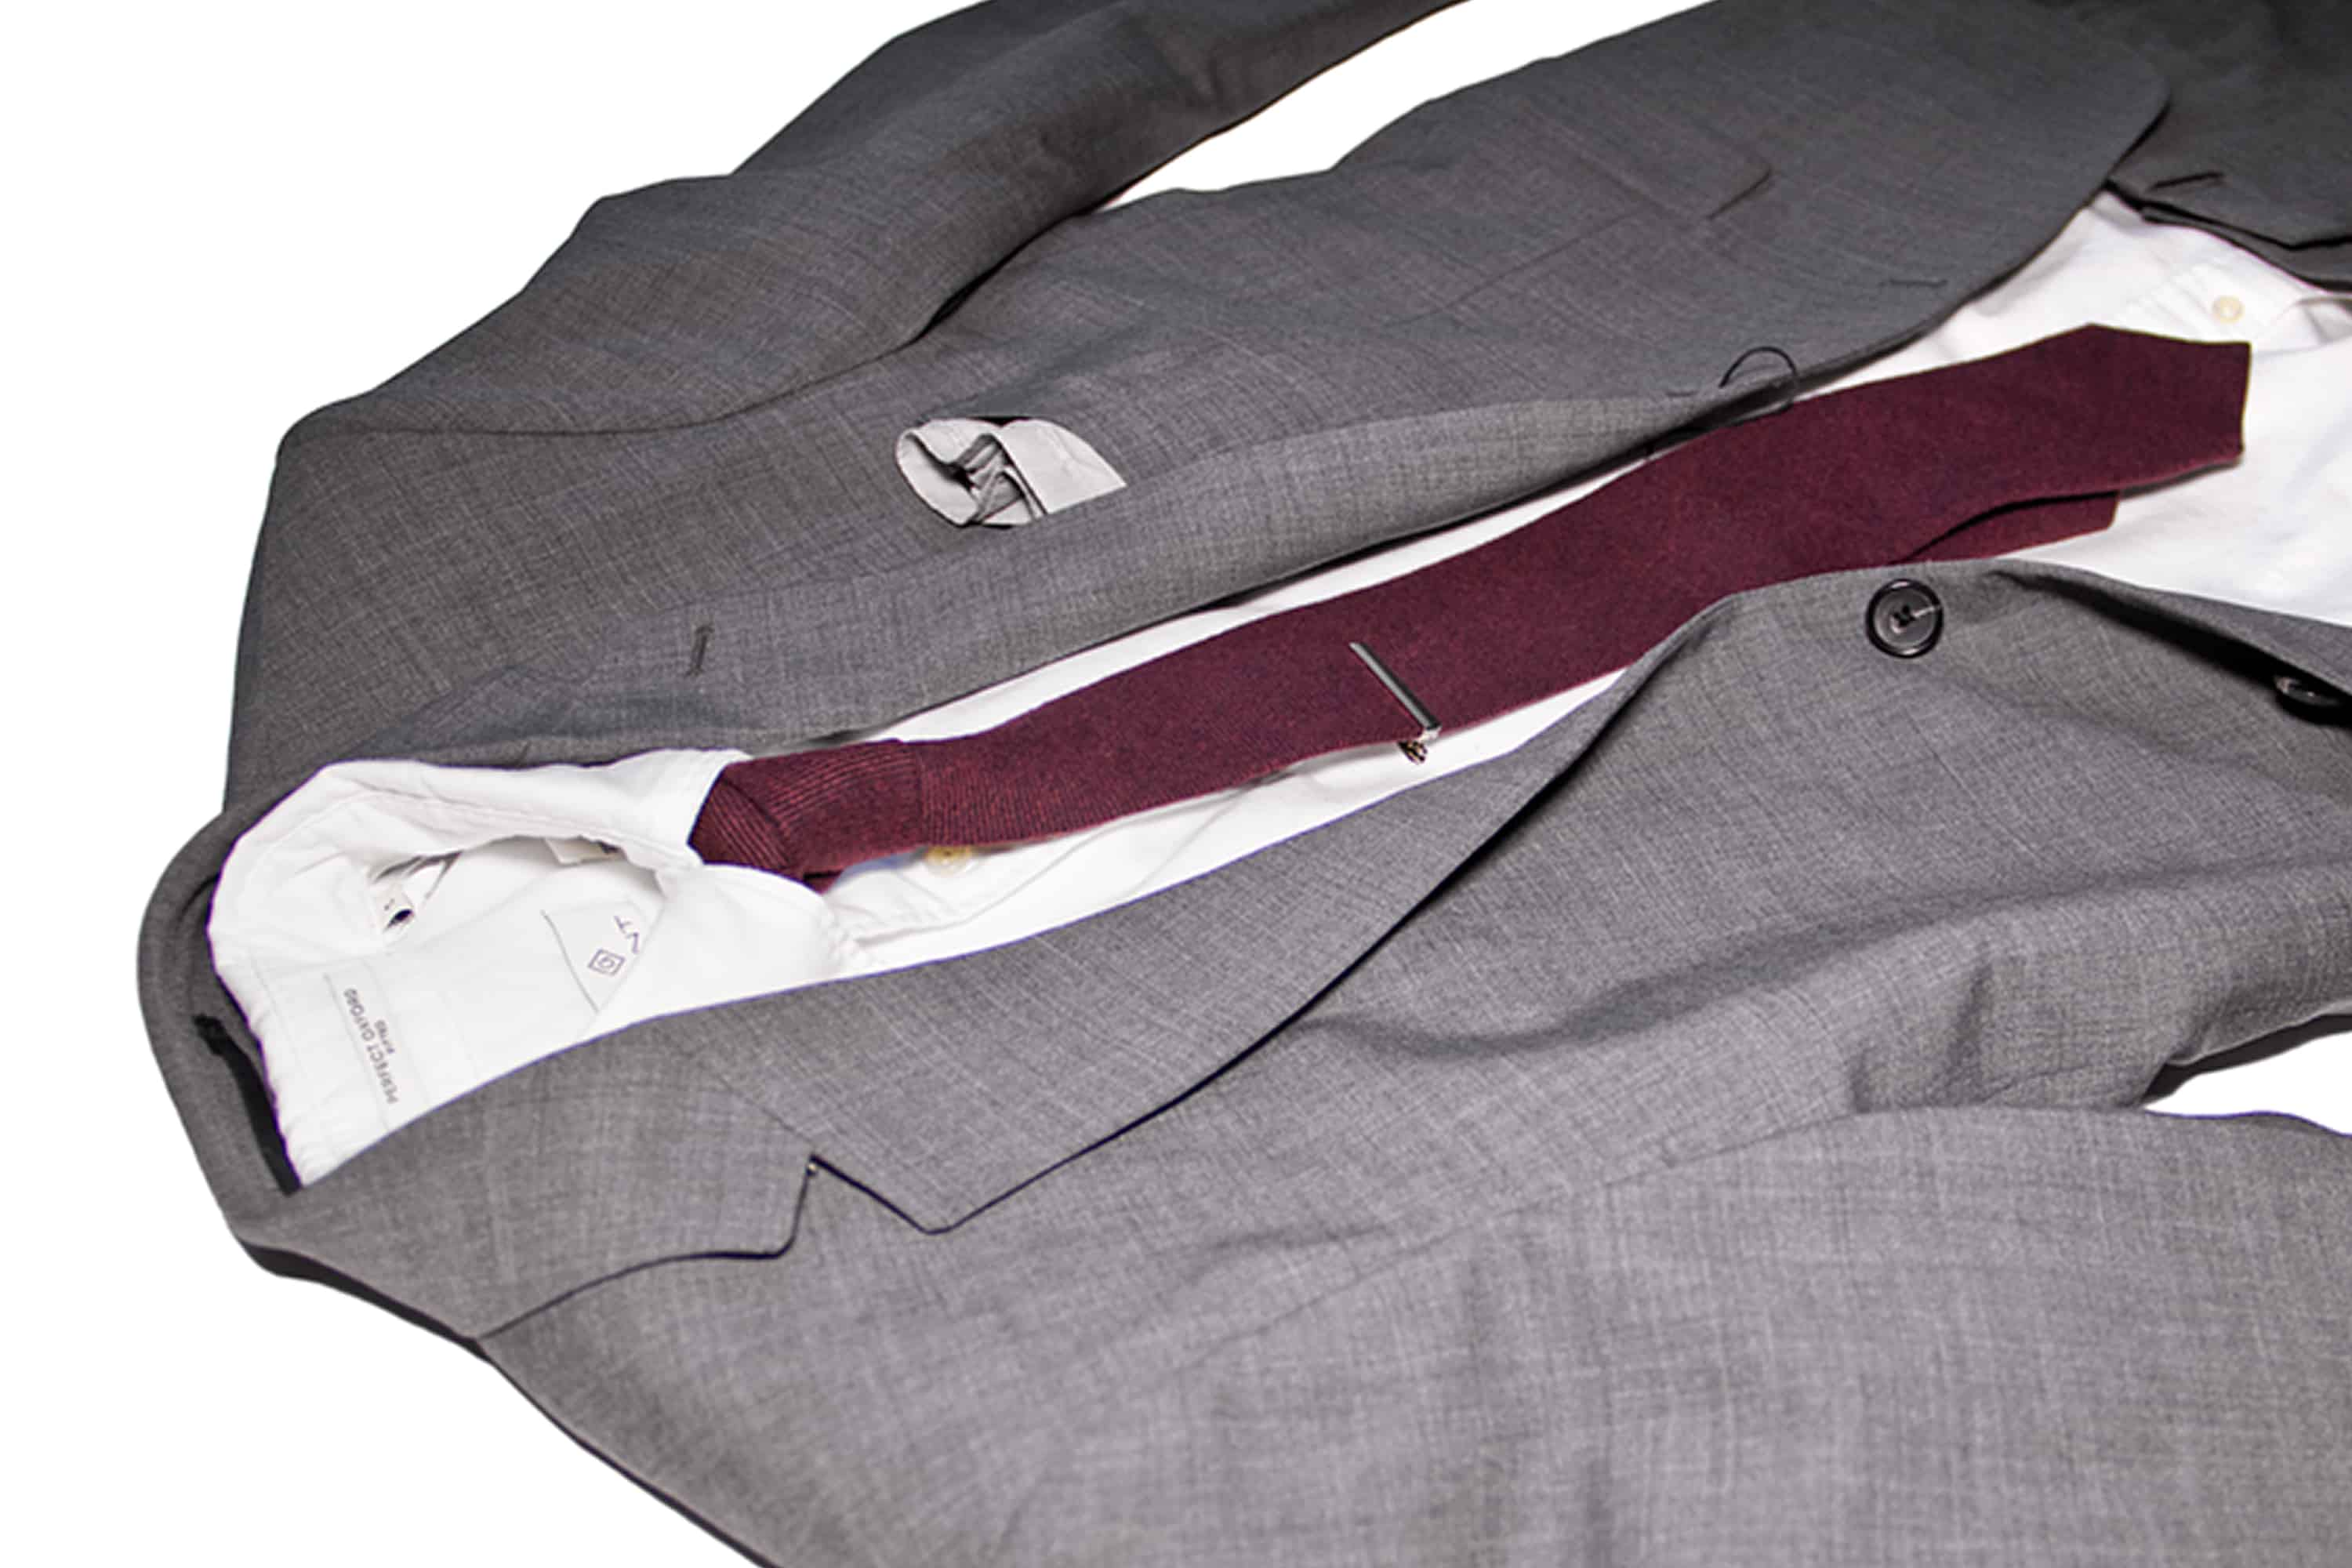 Men's suite outfit in MAN'edged Magazine ADVICE column for men's style